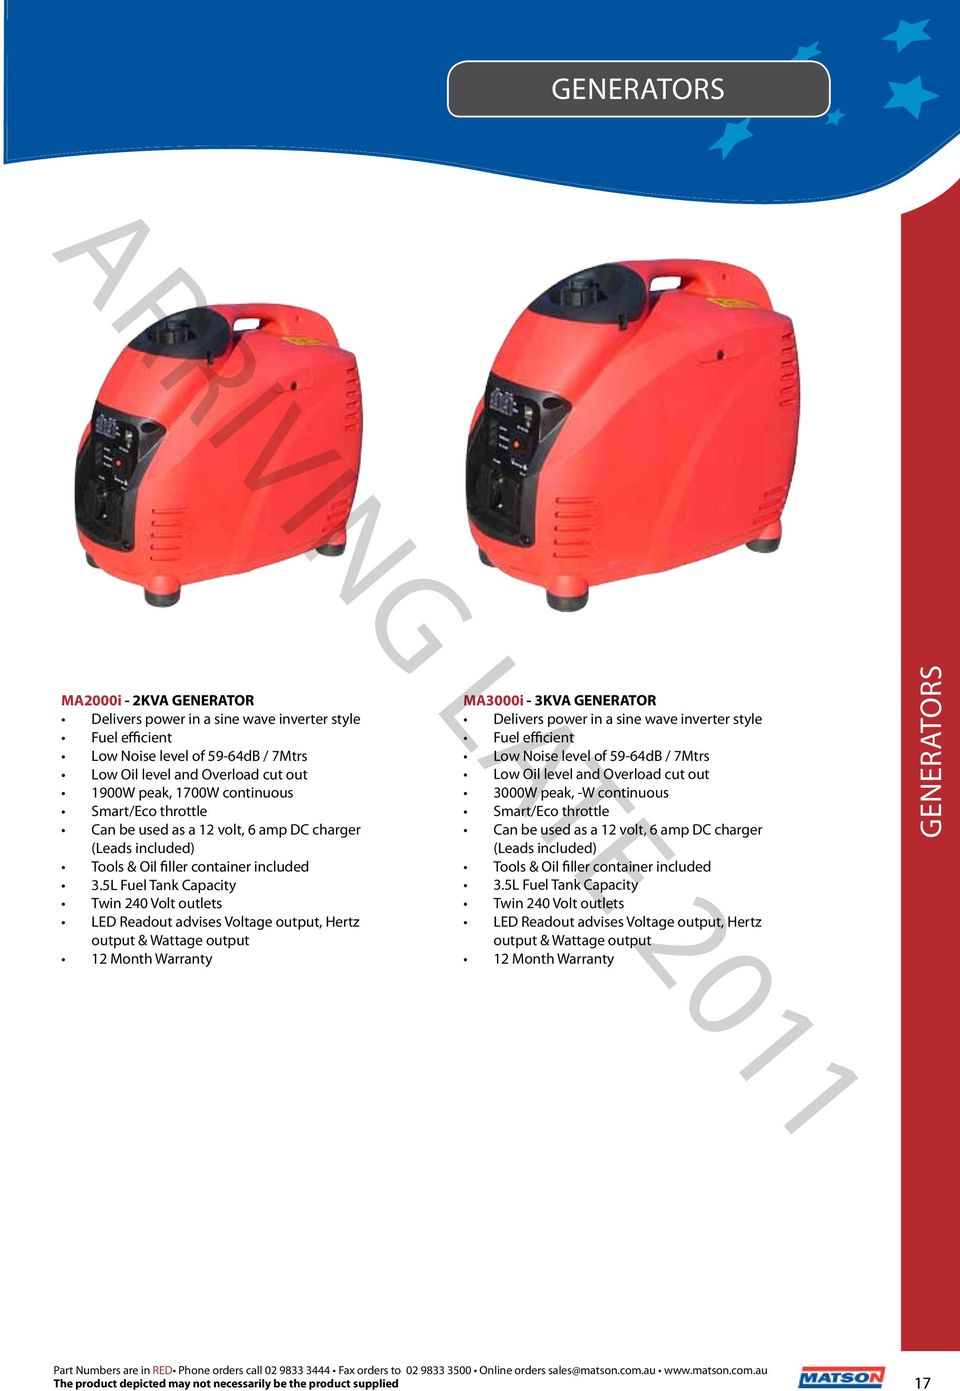 2012 V10 The Professionals Choice Pdf Suoer 2 In 1 Inverter Charger 500 Watt Typer Saa 500w C 5l Fuel Tank Capacity Twin 240 Volt Outlets Led Readout Advises Voltage Output Hertz